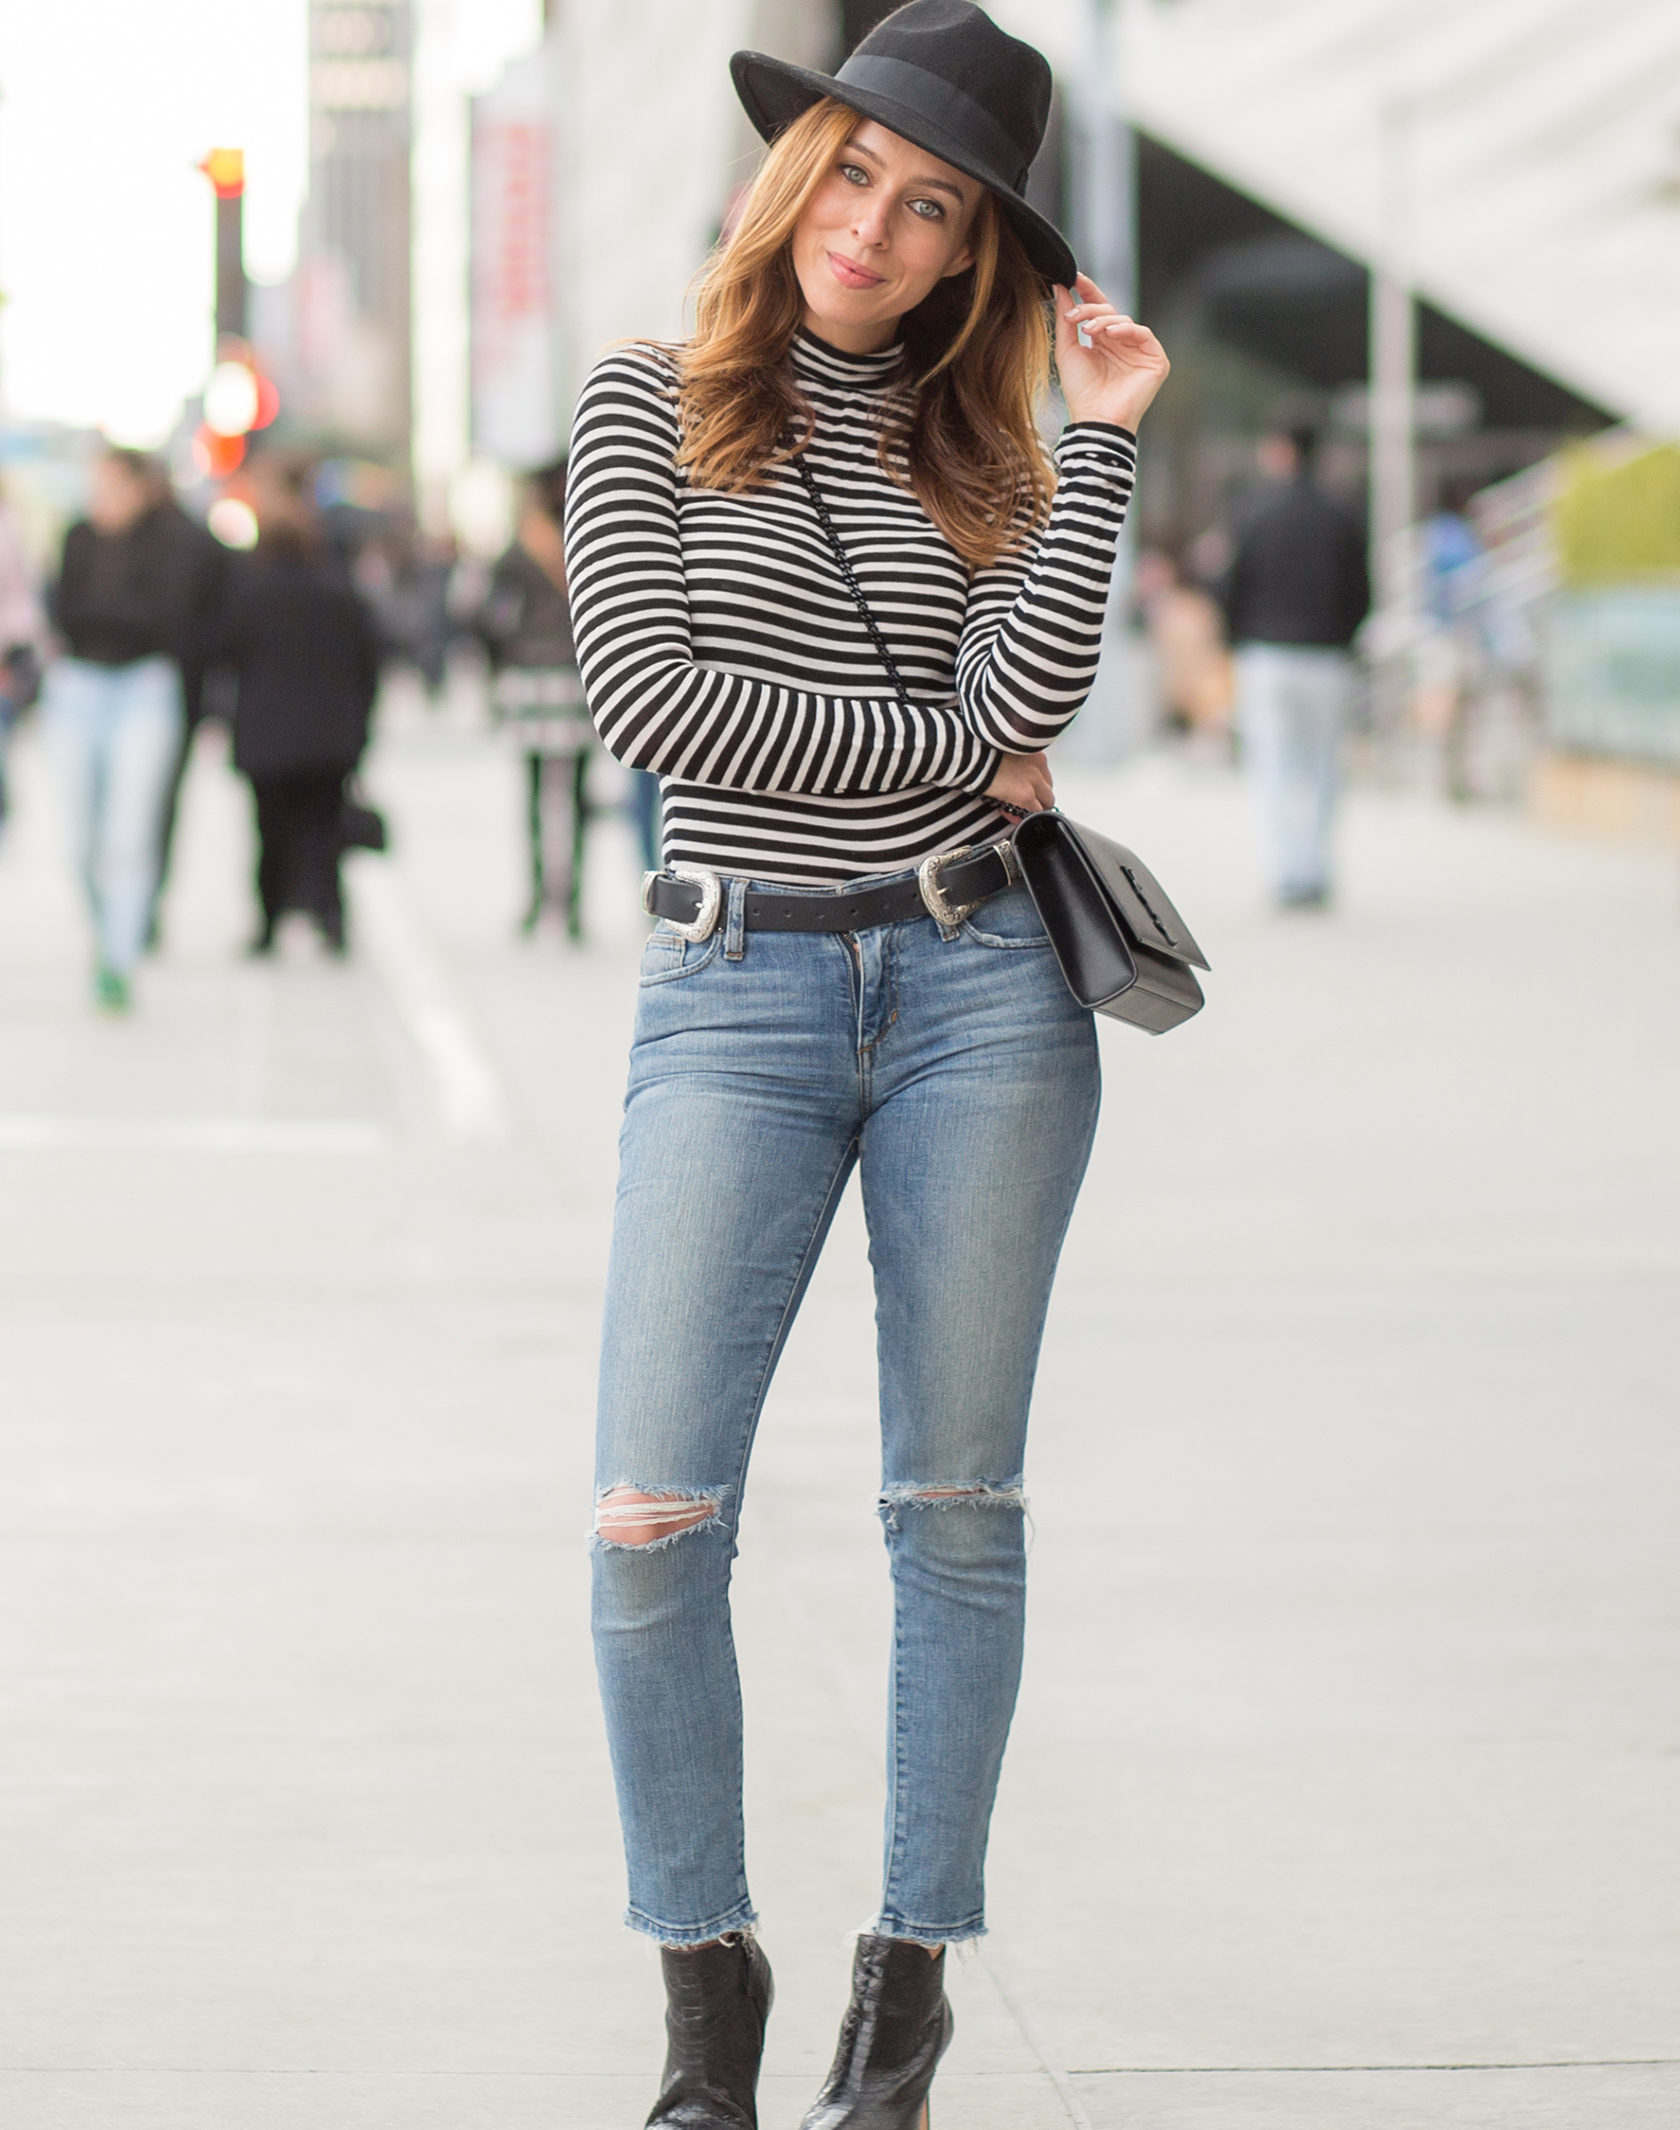 Sydne Style shows how to wear the stripe trend in winter in forever 21 turtleneck and joes jeans